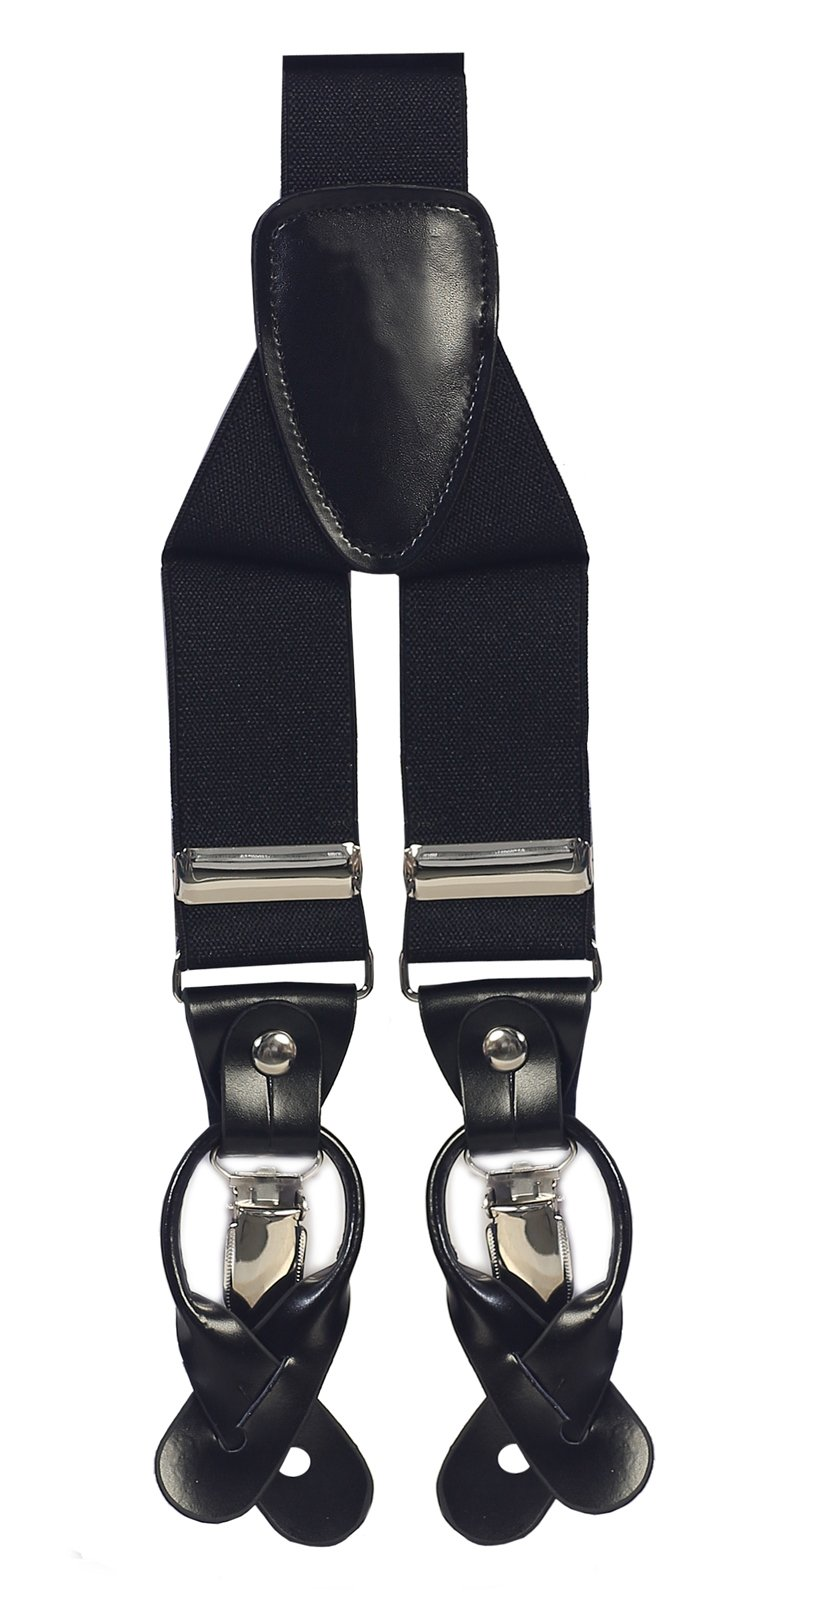 """GIFT_Mens 1 3/8"""" Button & Clip Leather Patch Convertible Suspenders_MULTI COLORS (Black)"""